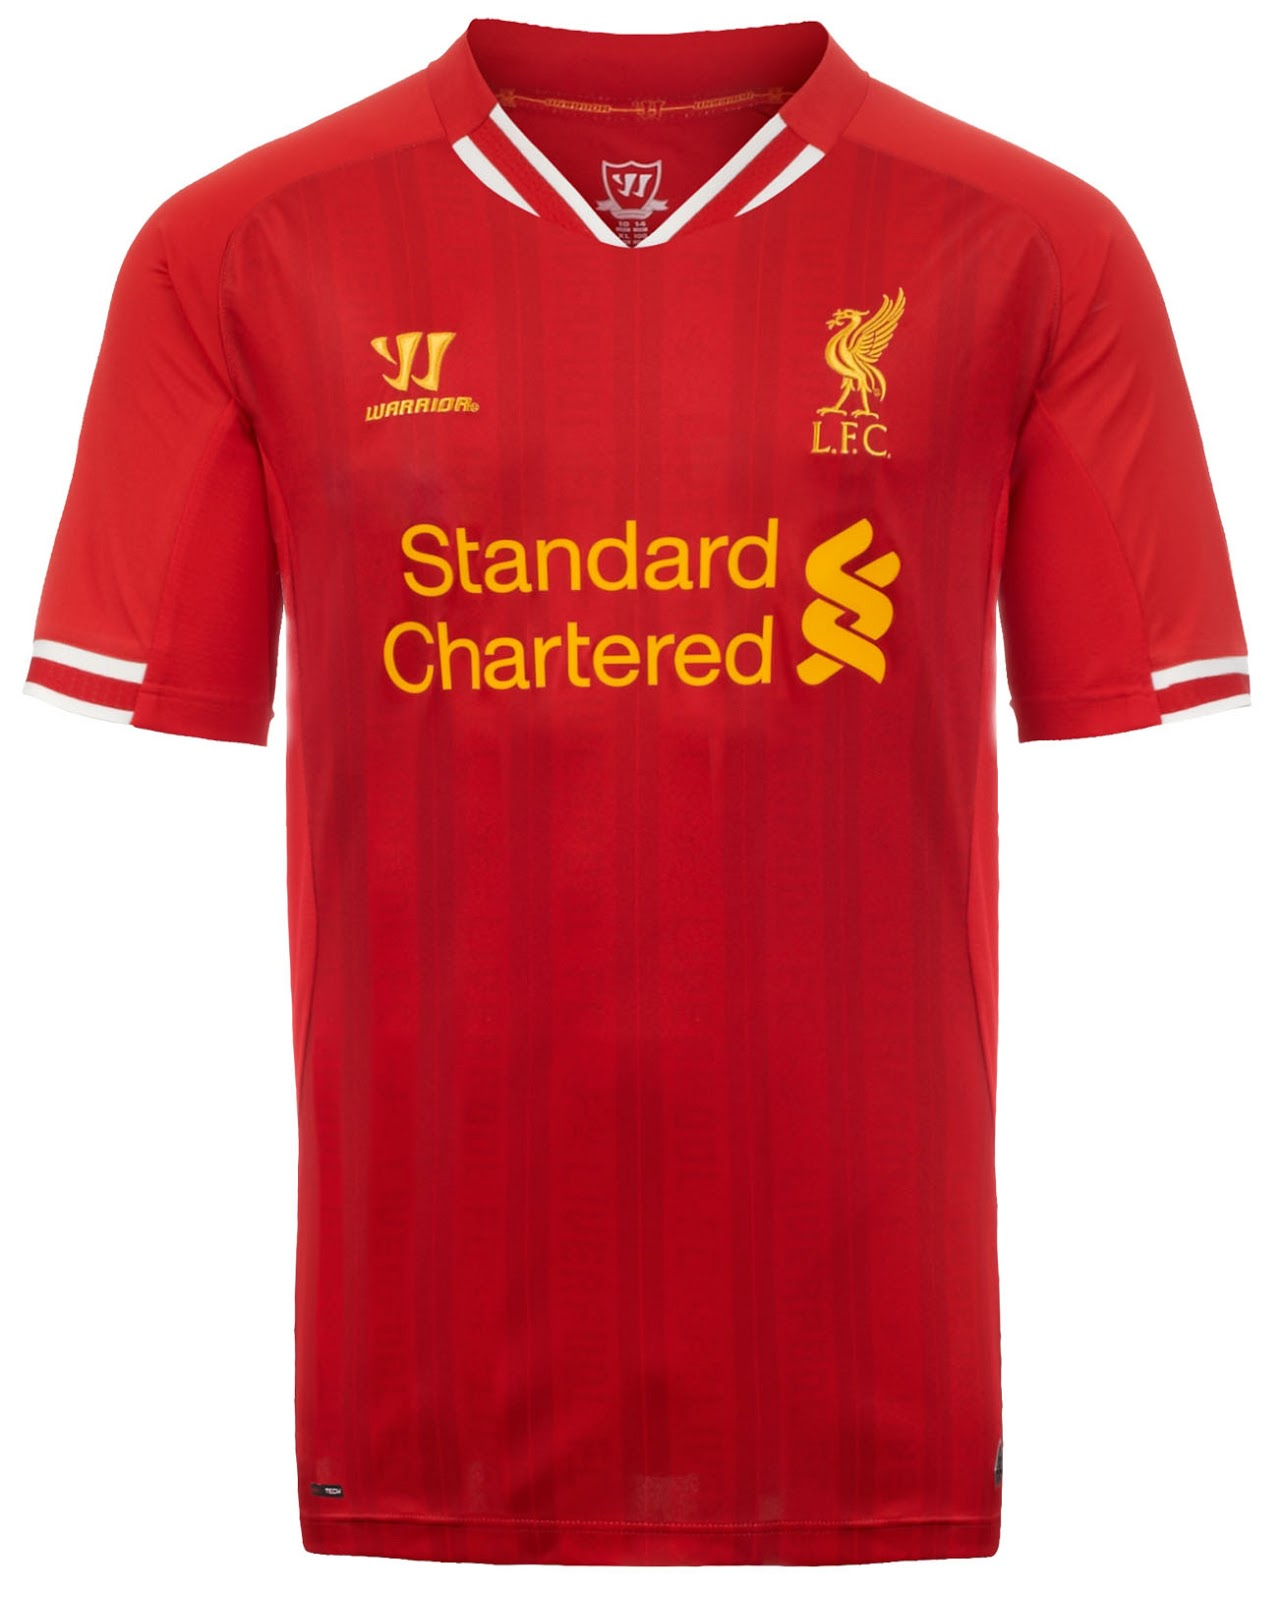 5c3e280db Liverpool won seven league titles and two European cups in the 1980s